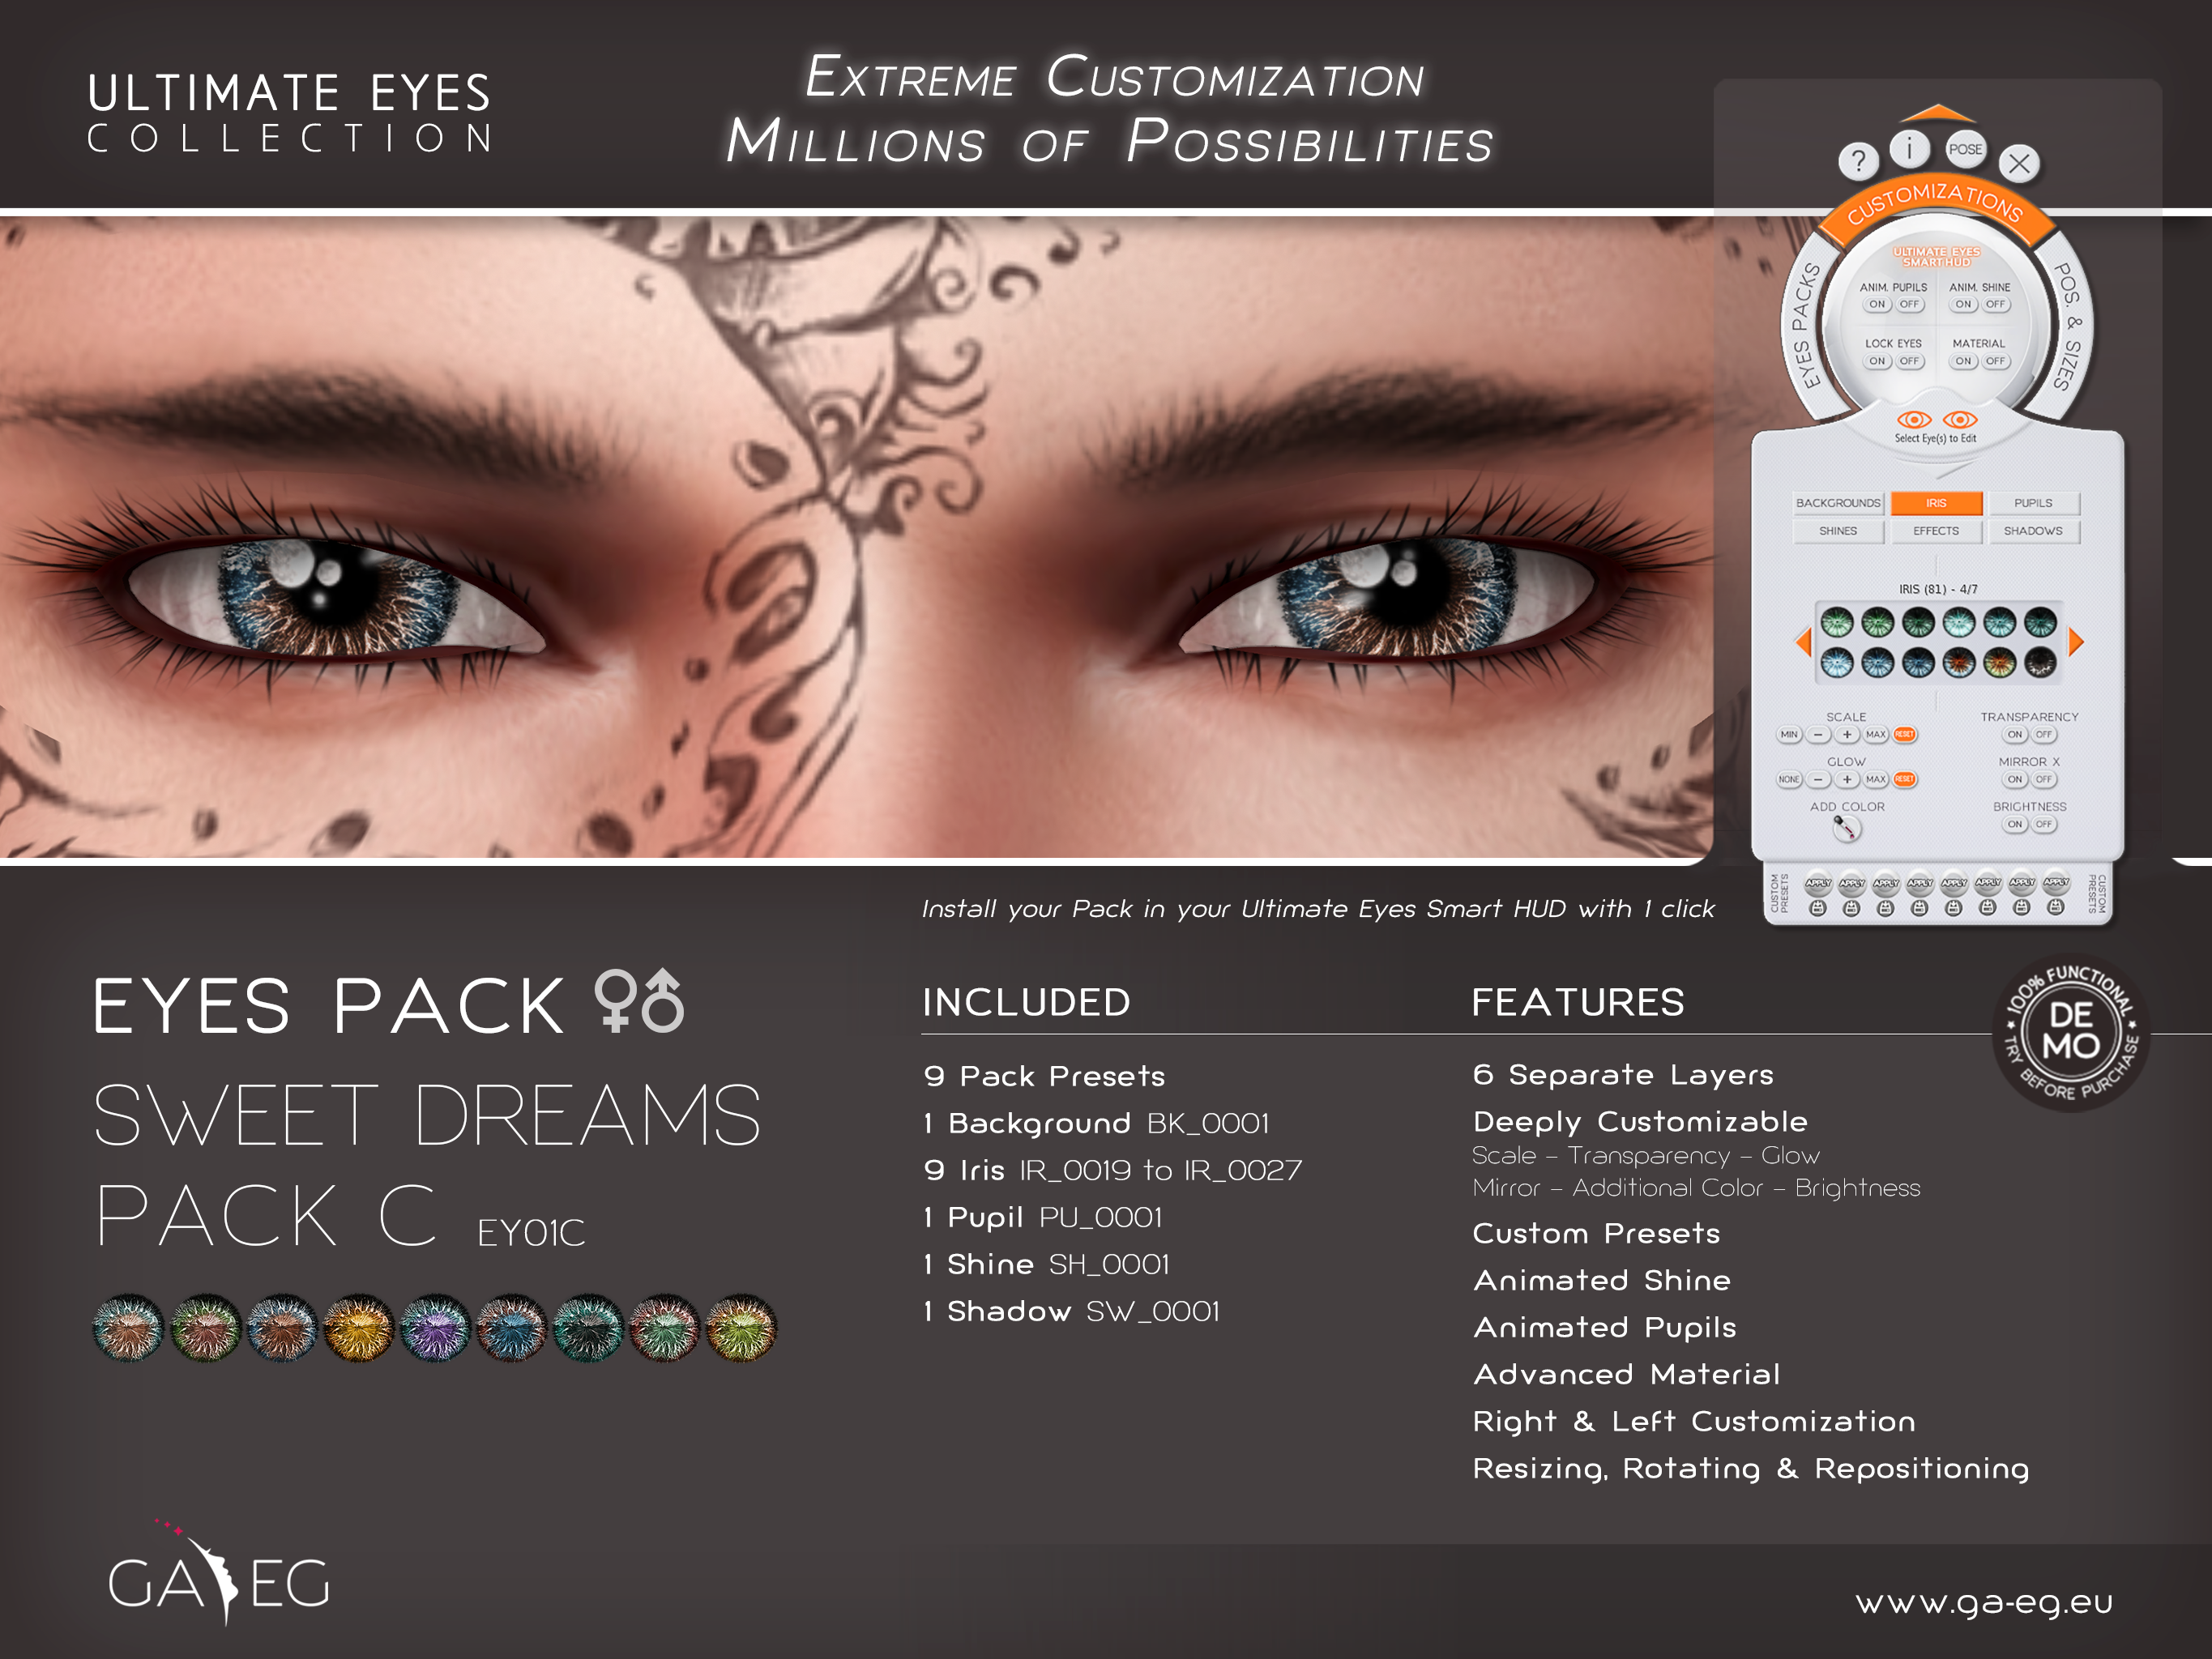 Ultimate Eyes Pack - EY01C Sweet Dreams Pack C